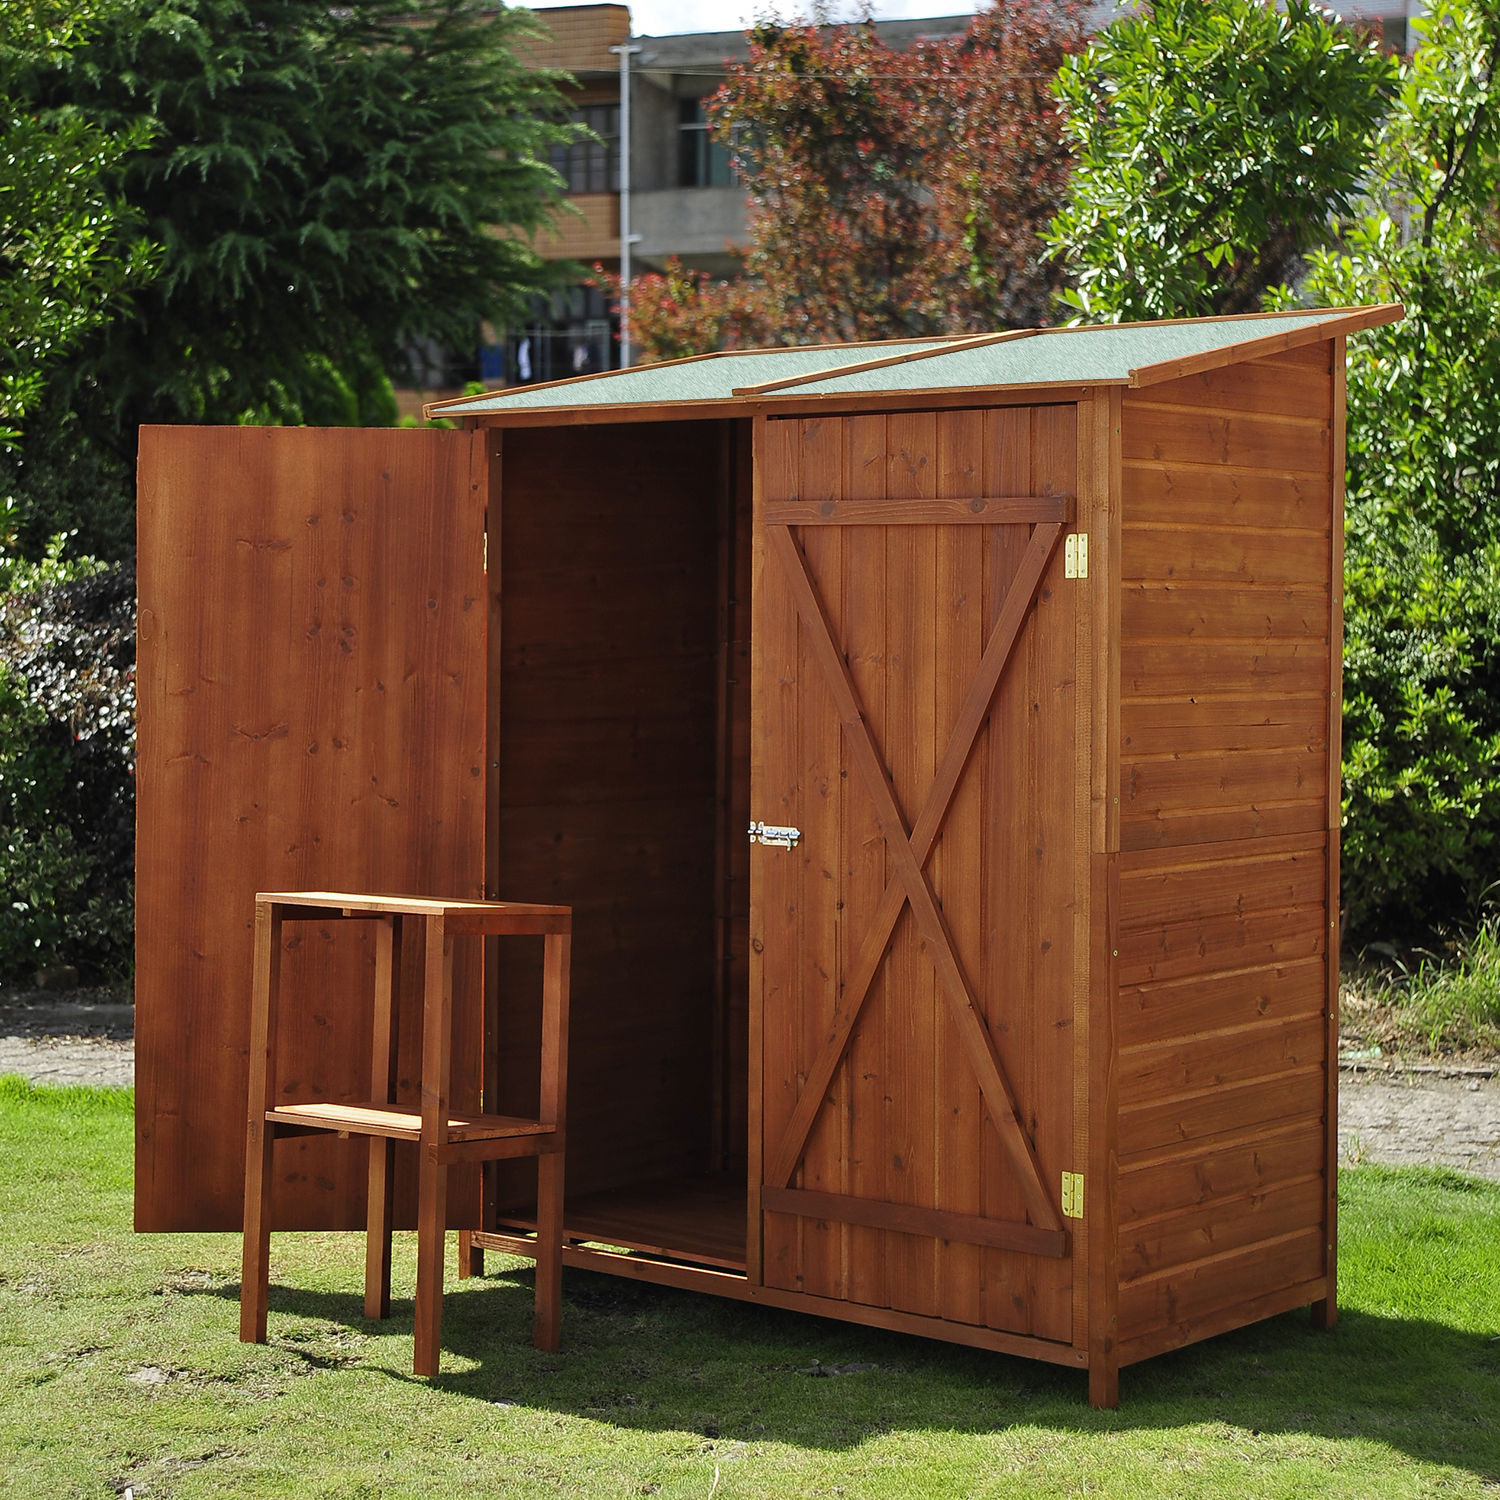 Details About Outsunny Garden Shed Cabinet Box Unit Tool Storage Shelves  Wooden Toolbox